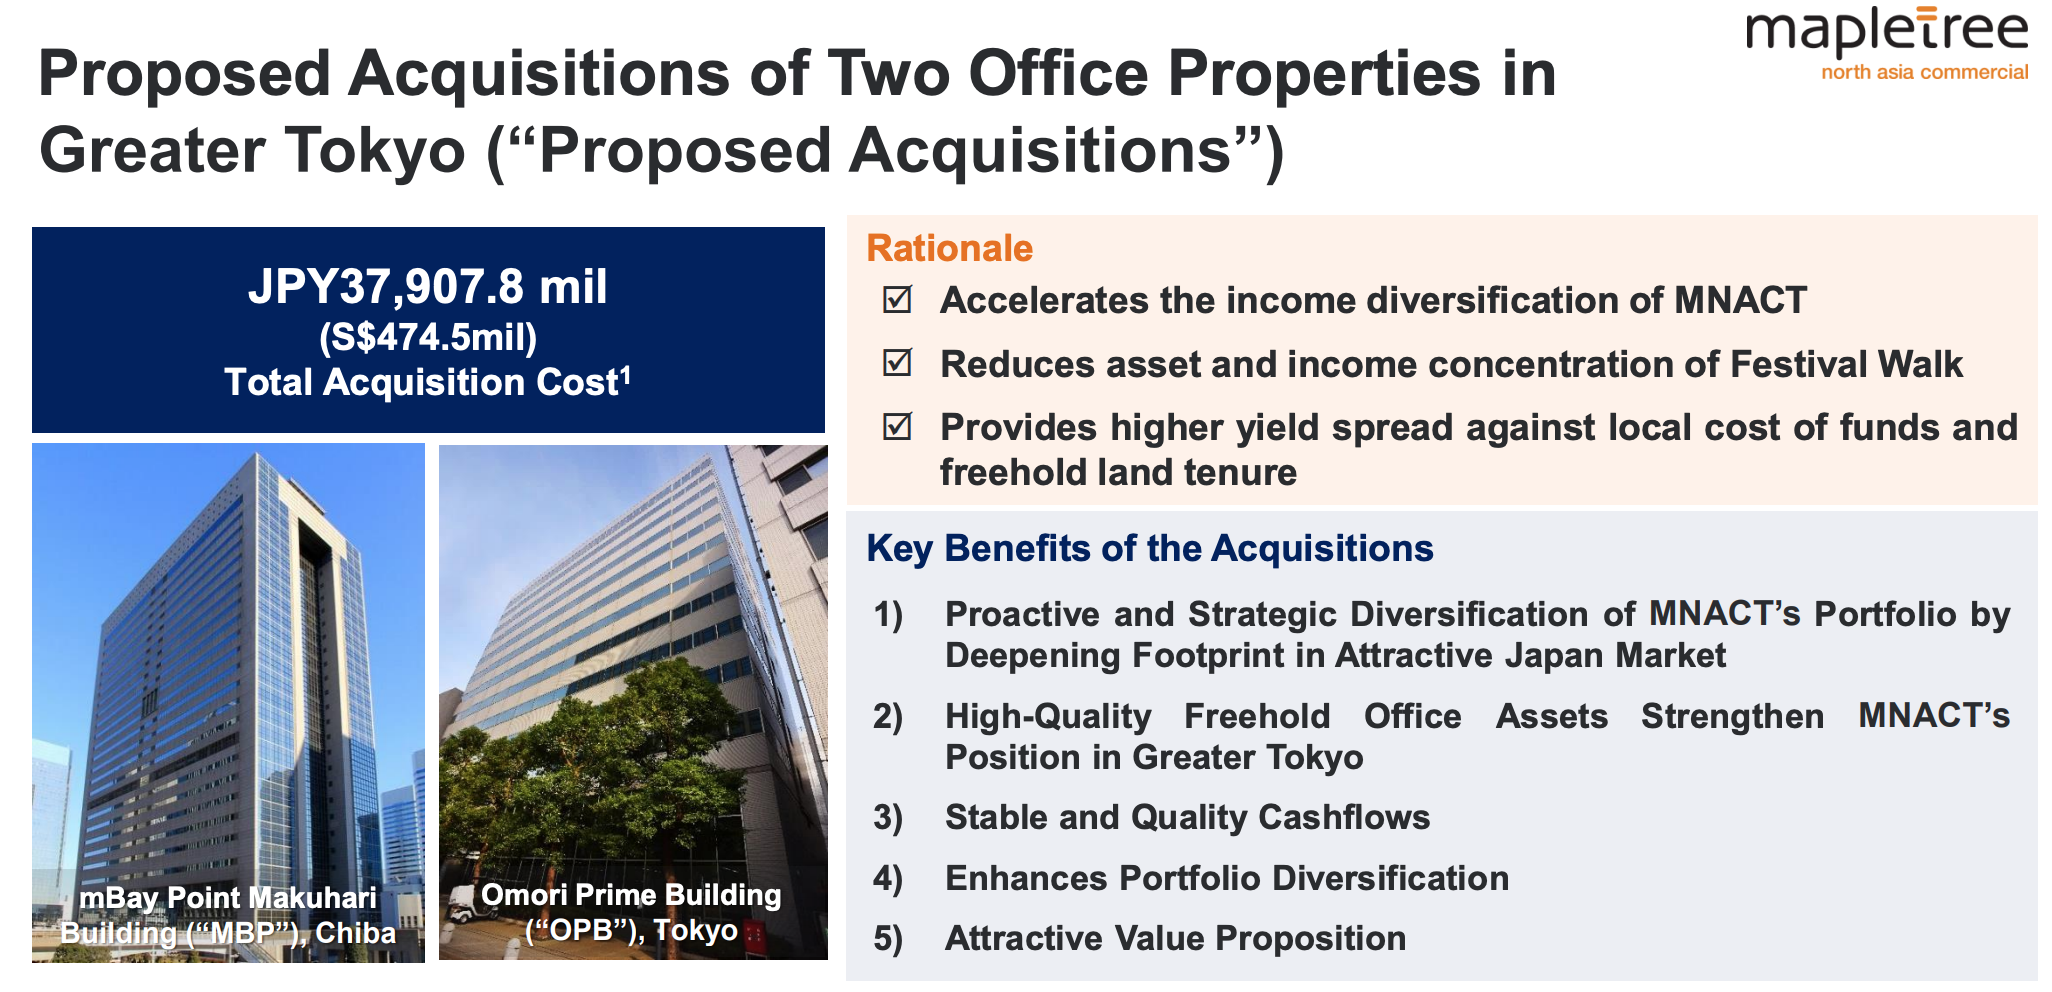 Mapletree North Asia Commercial Trust acquisition of Japan properties